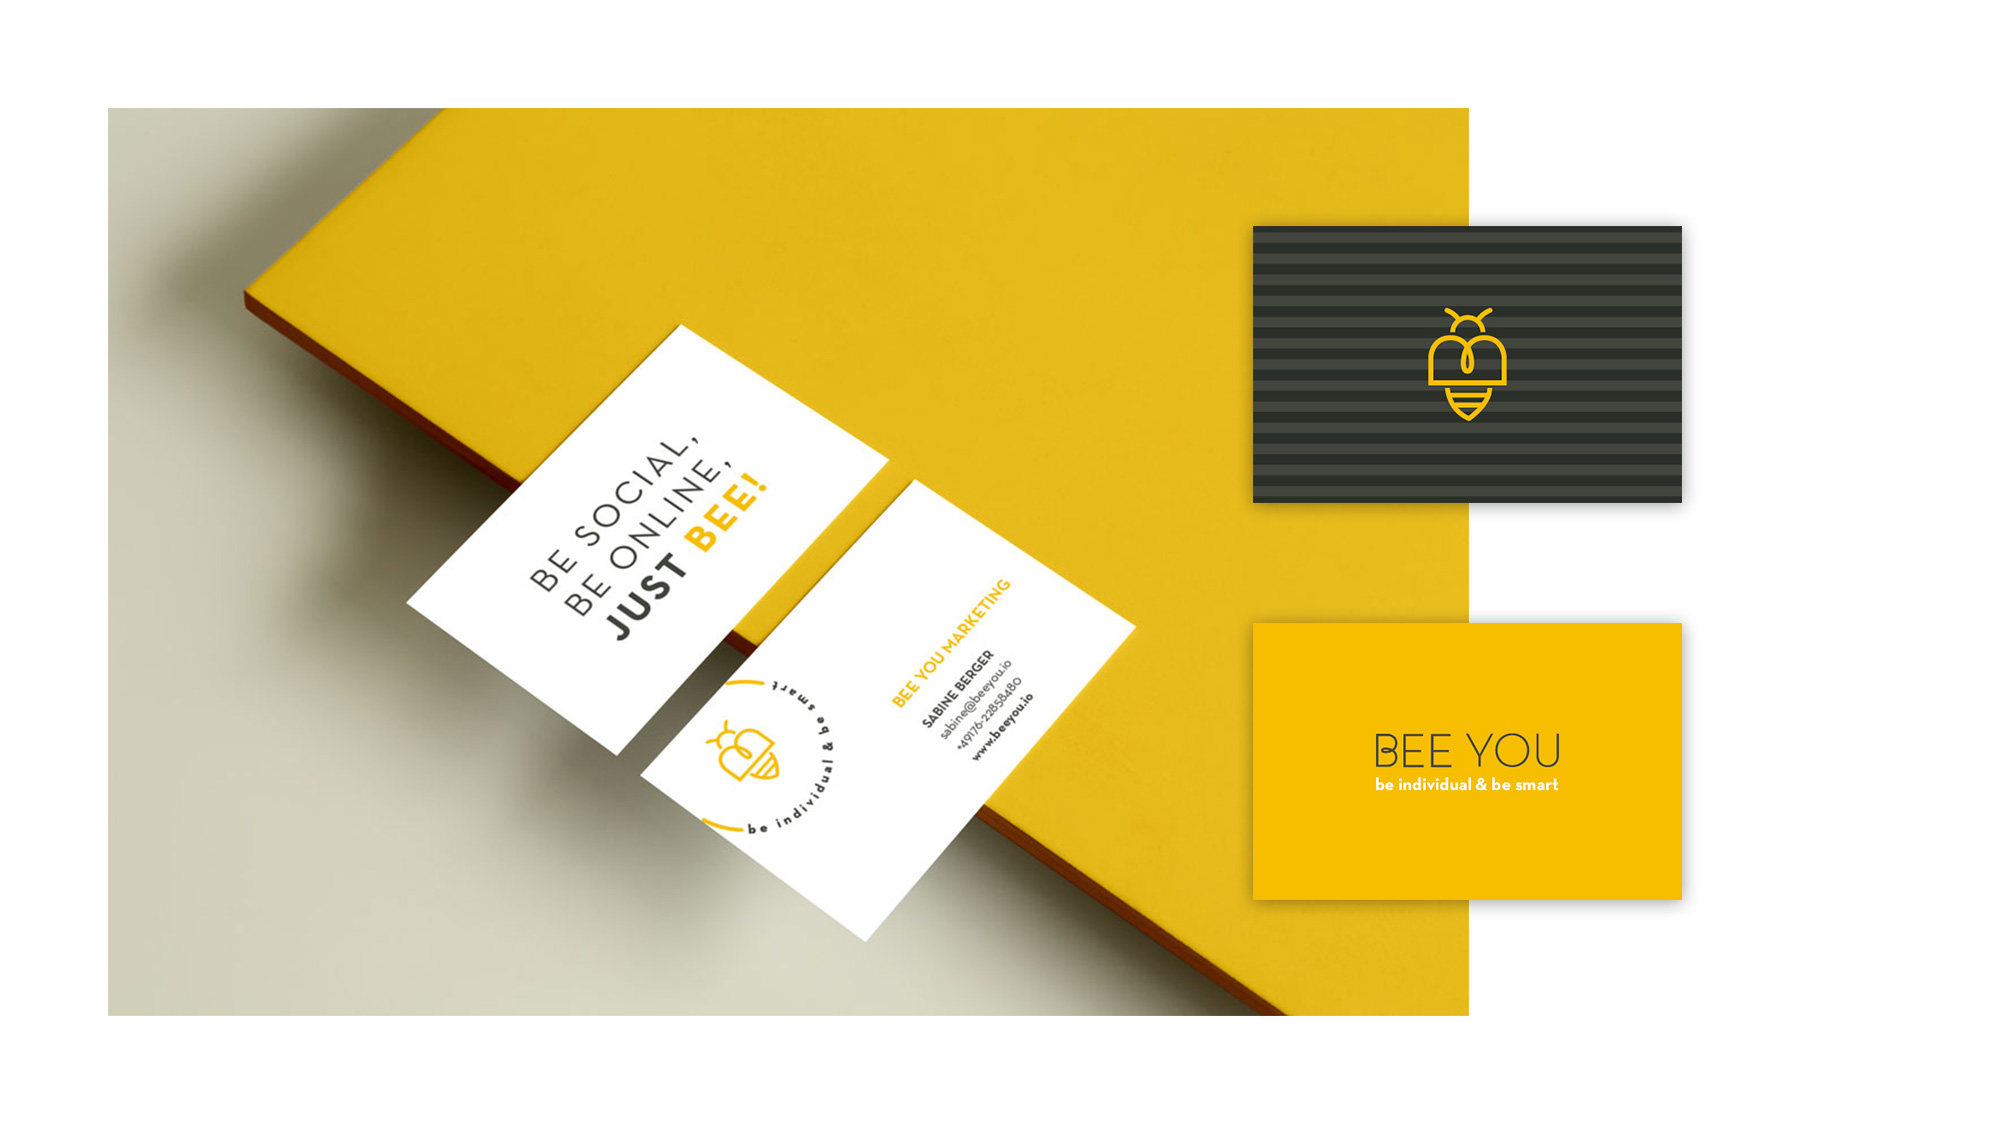 trc_bee-you_business-cards